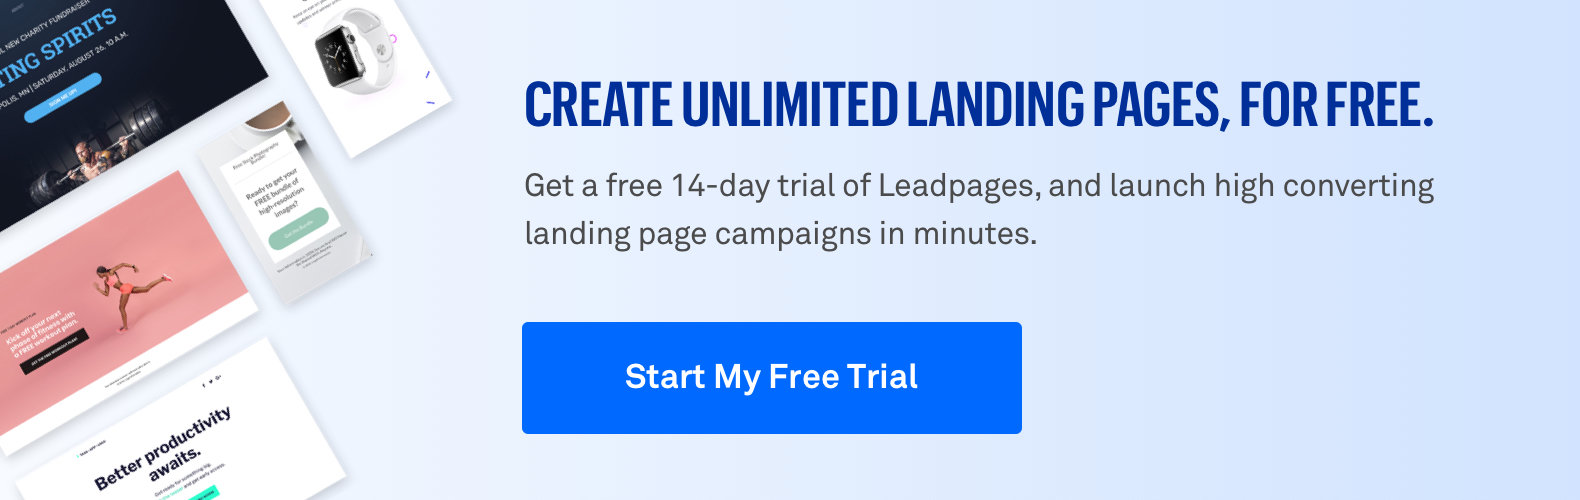 Leadpages free 14 day trial